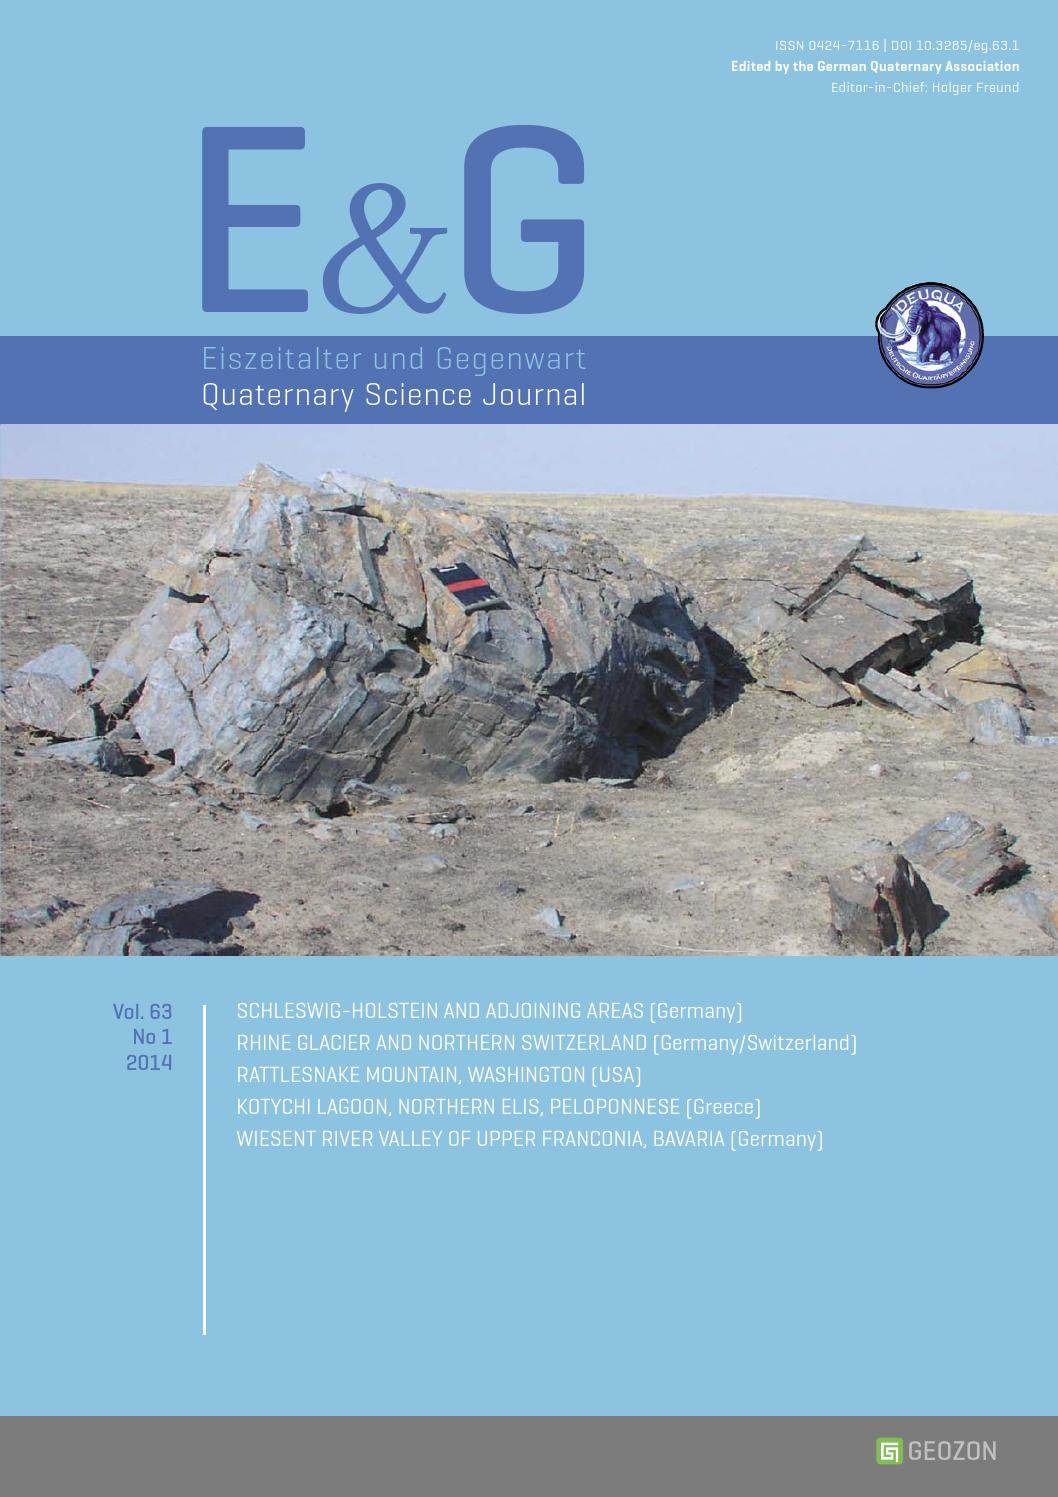 E&G – Quaternary Science Journal - Vol. 63 No 1 by Geozon ...